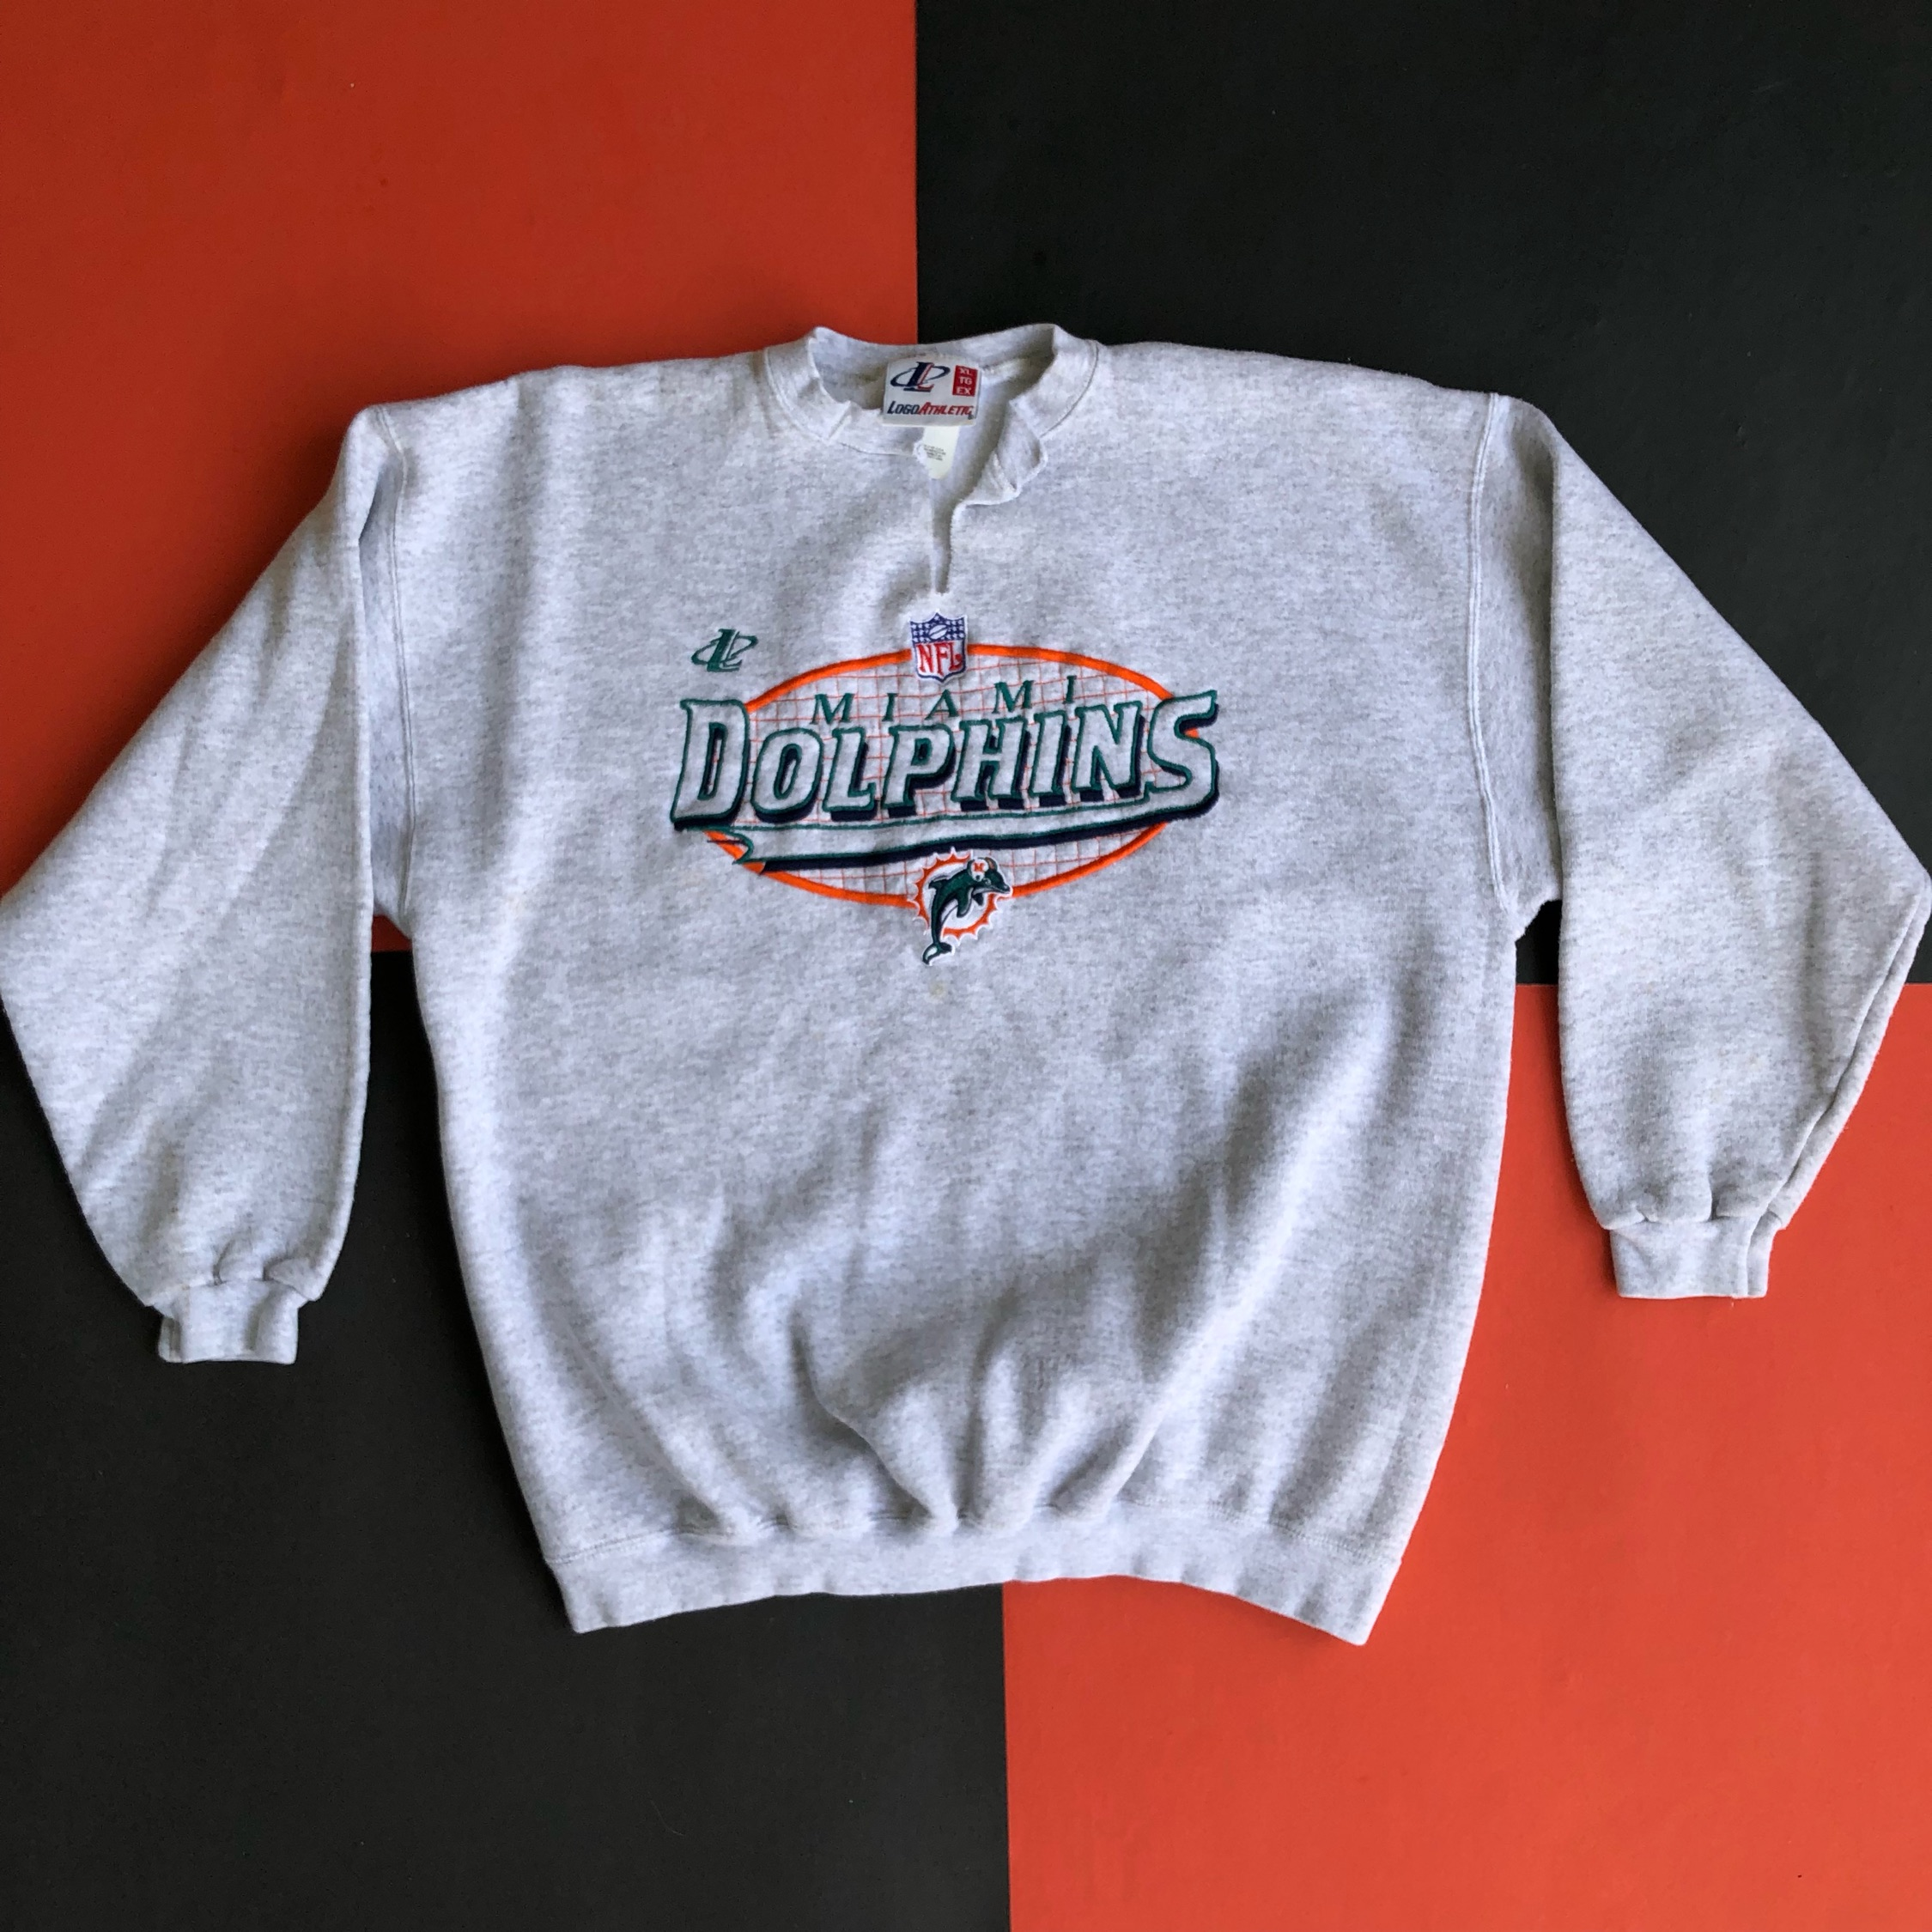 separation shoes 27273 24c5d Vintage Miami Dolphins Embroidered Sweatshirt